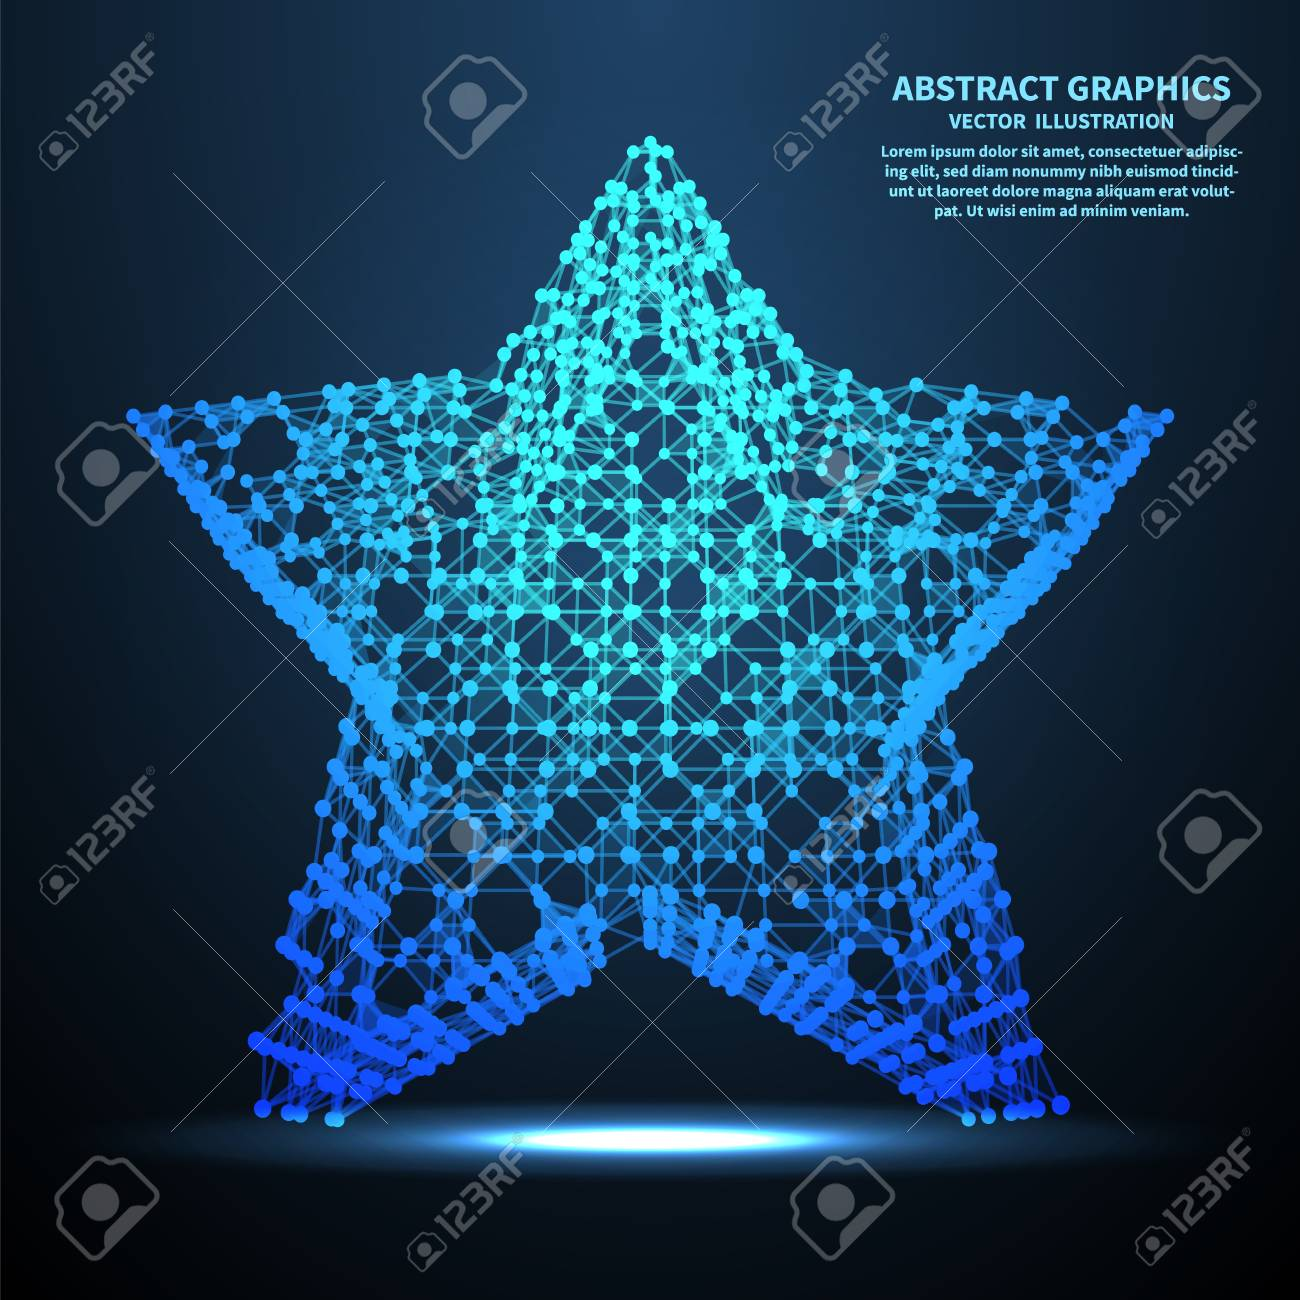 Abstract Star, Vector Illustration. Network Connections With ...